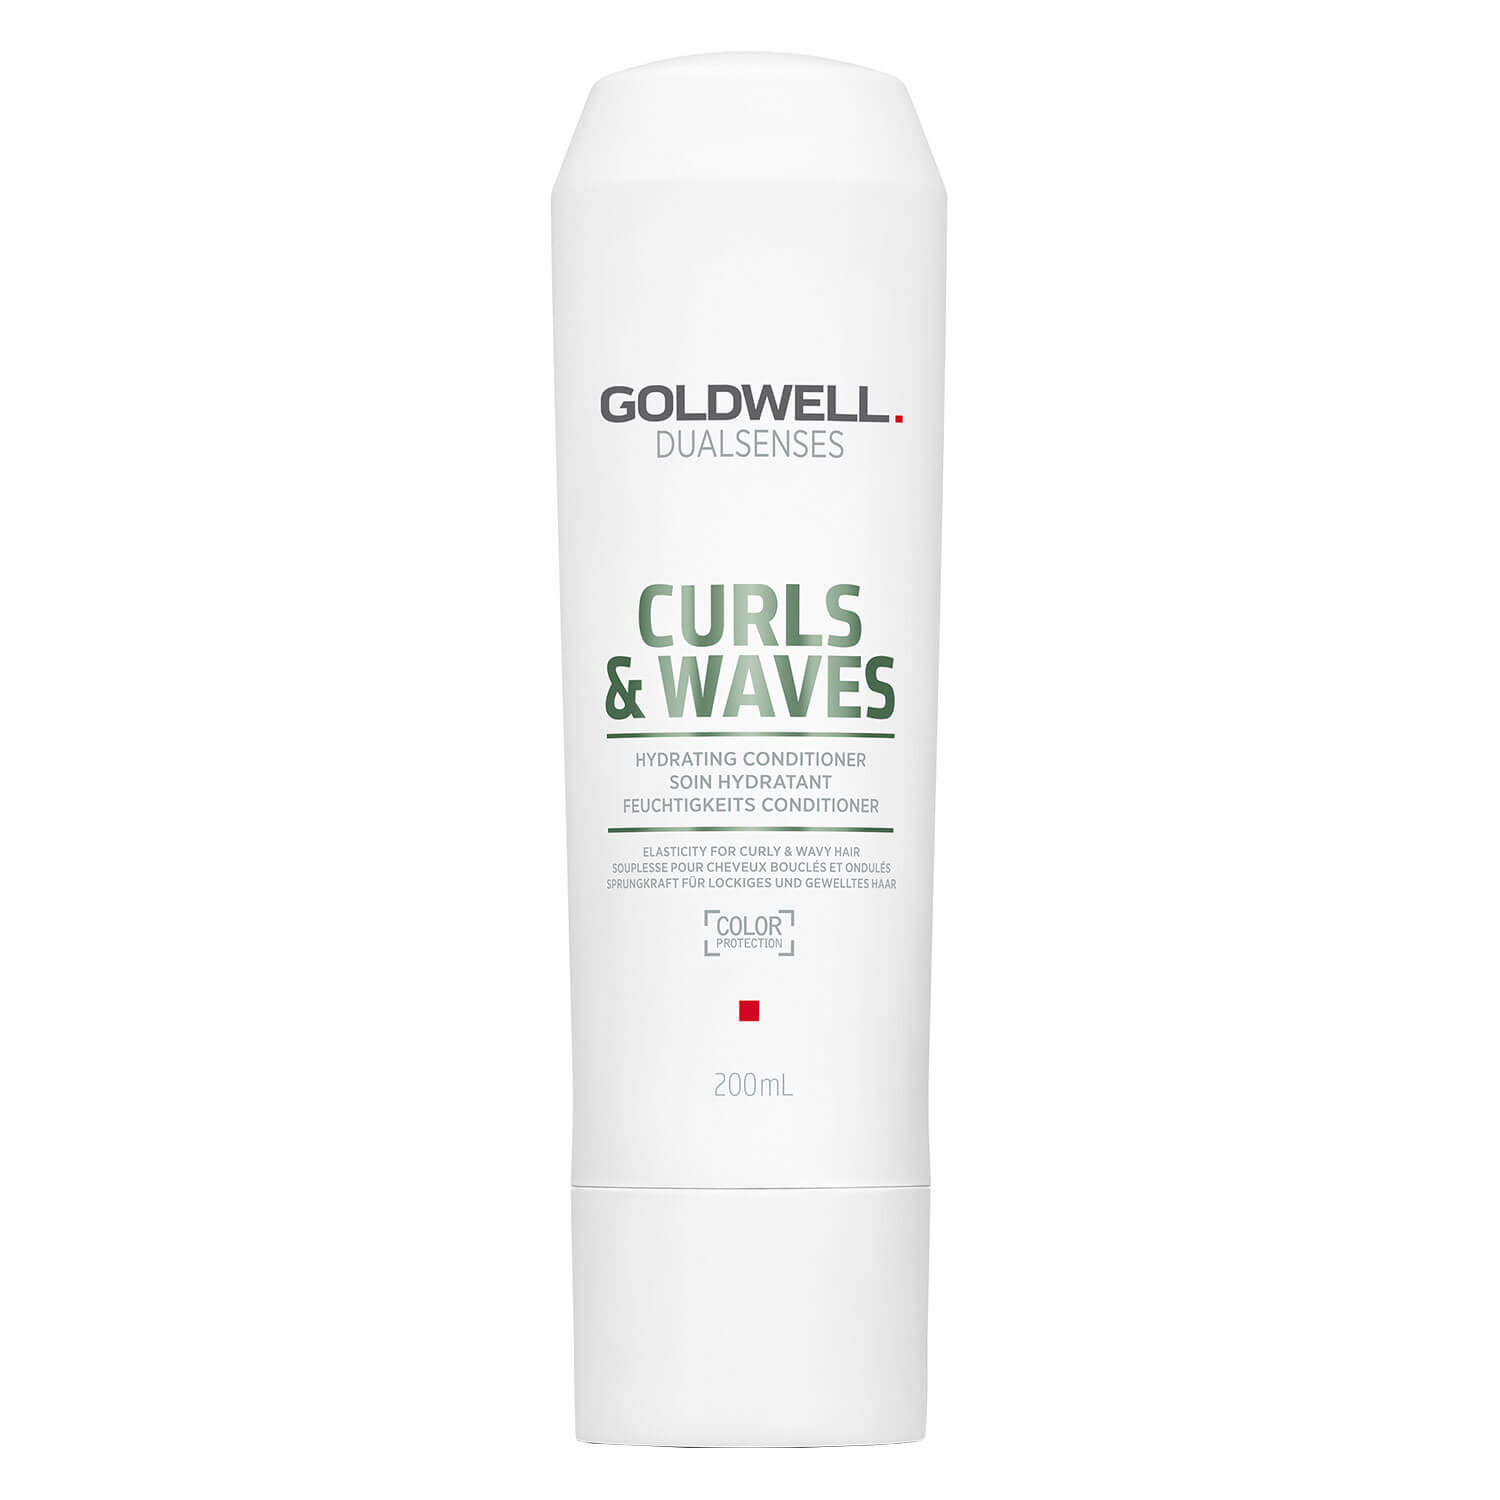 Dualsenses Curls & Waves - Hydrating Conditioner